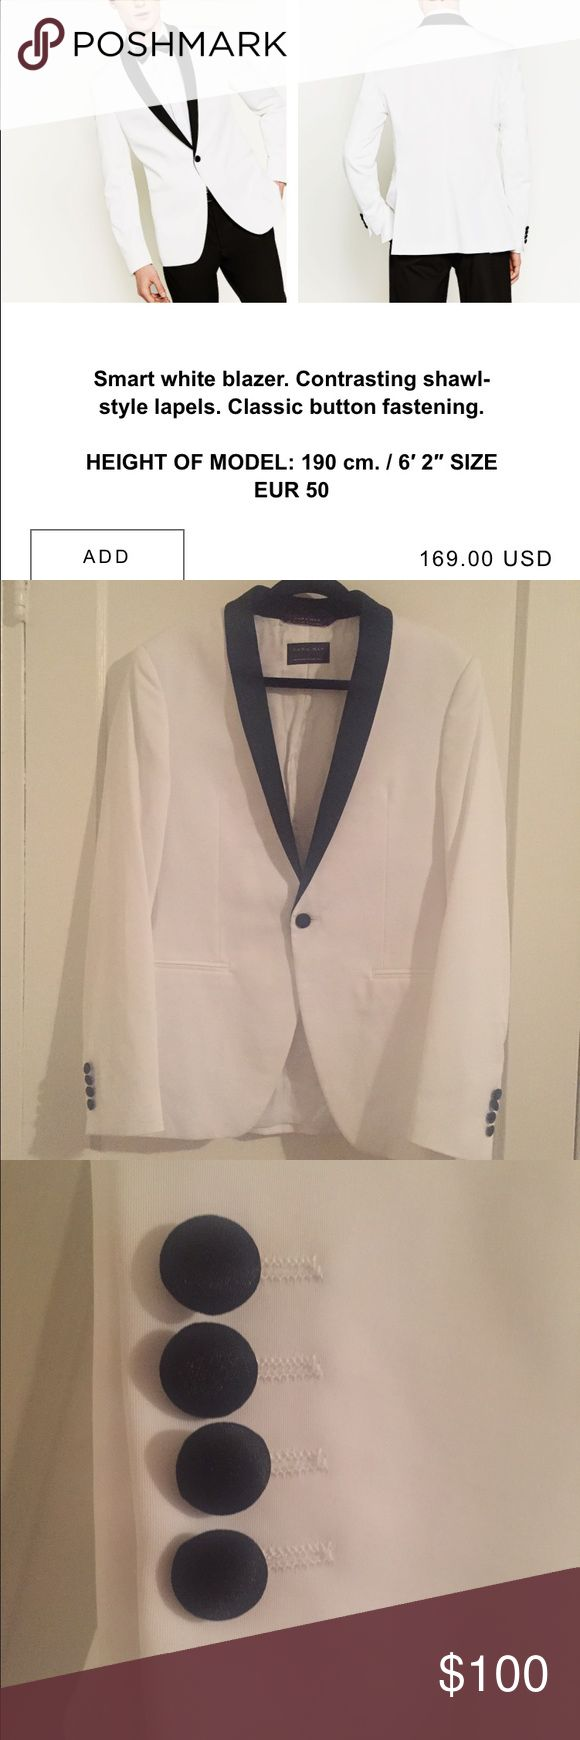 • ZARA • men's blazer with shawl lapel New Zara blazer. Bought earlier this year and worn only once for a wedding. Just dry cleaned. Perfect condition. Pairs well with black pants. Zara Suits & Blazers Sport Coats & Blazers